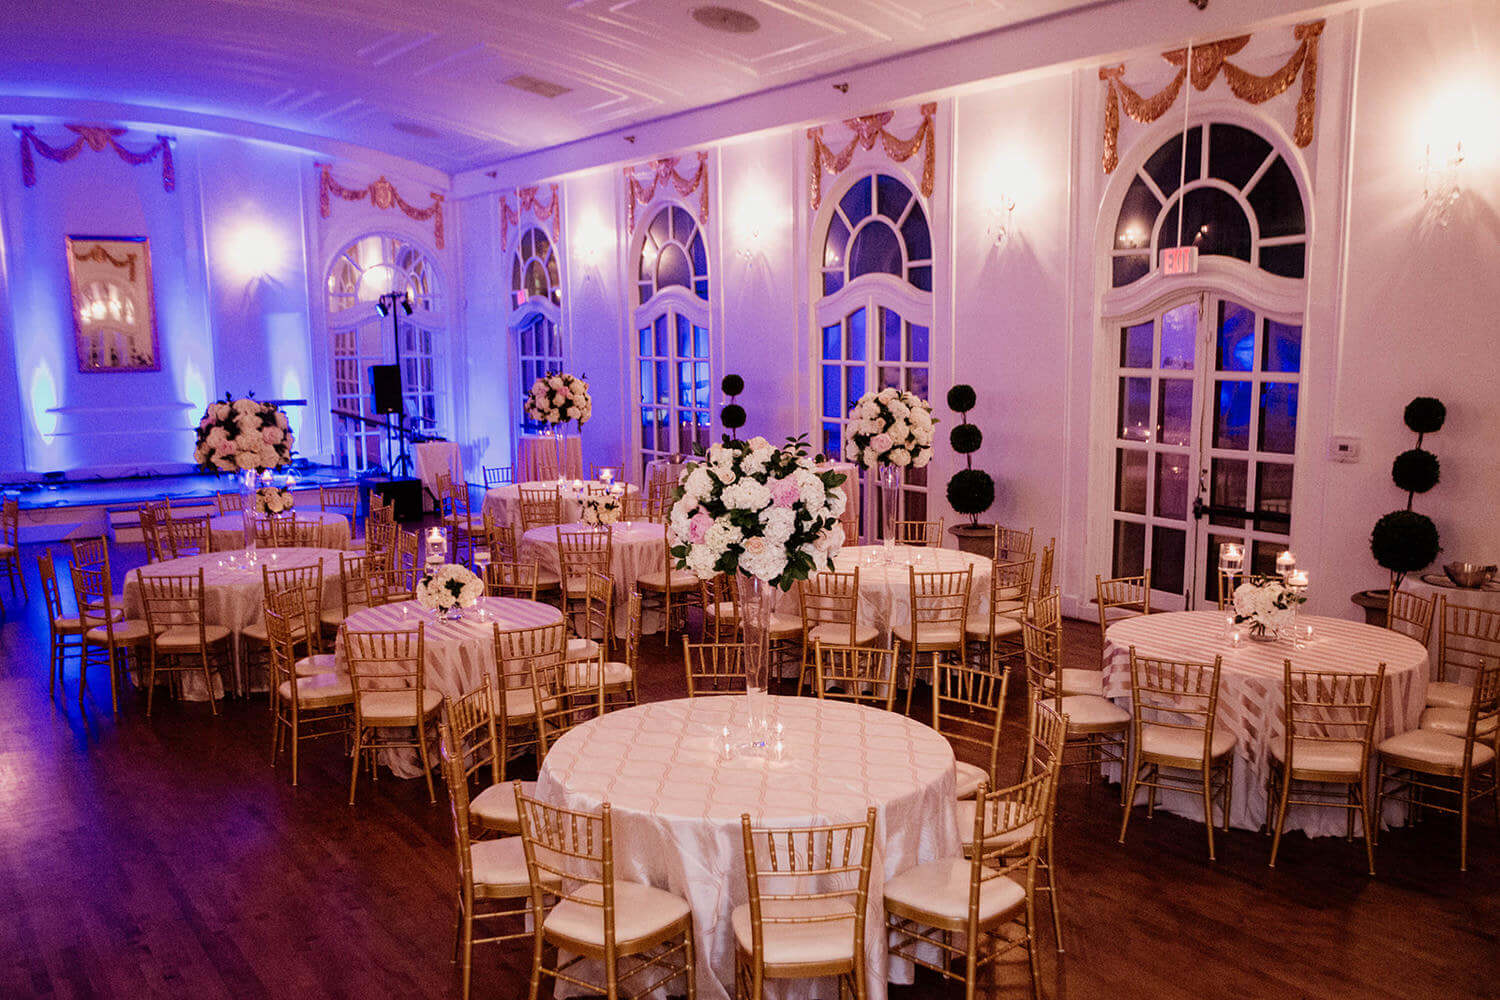 The reception took place at The Wimbish House